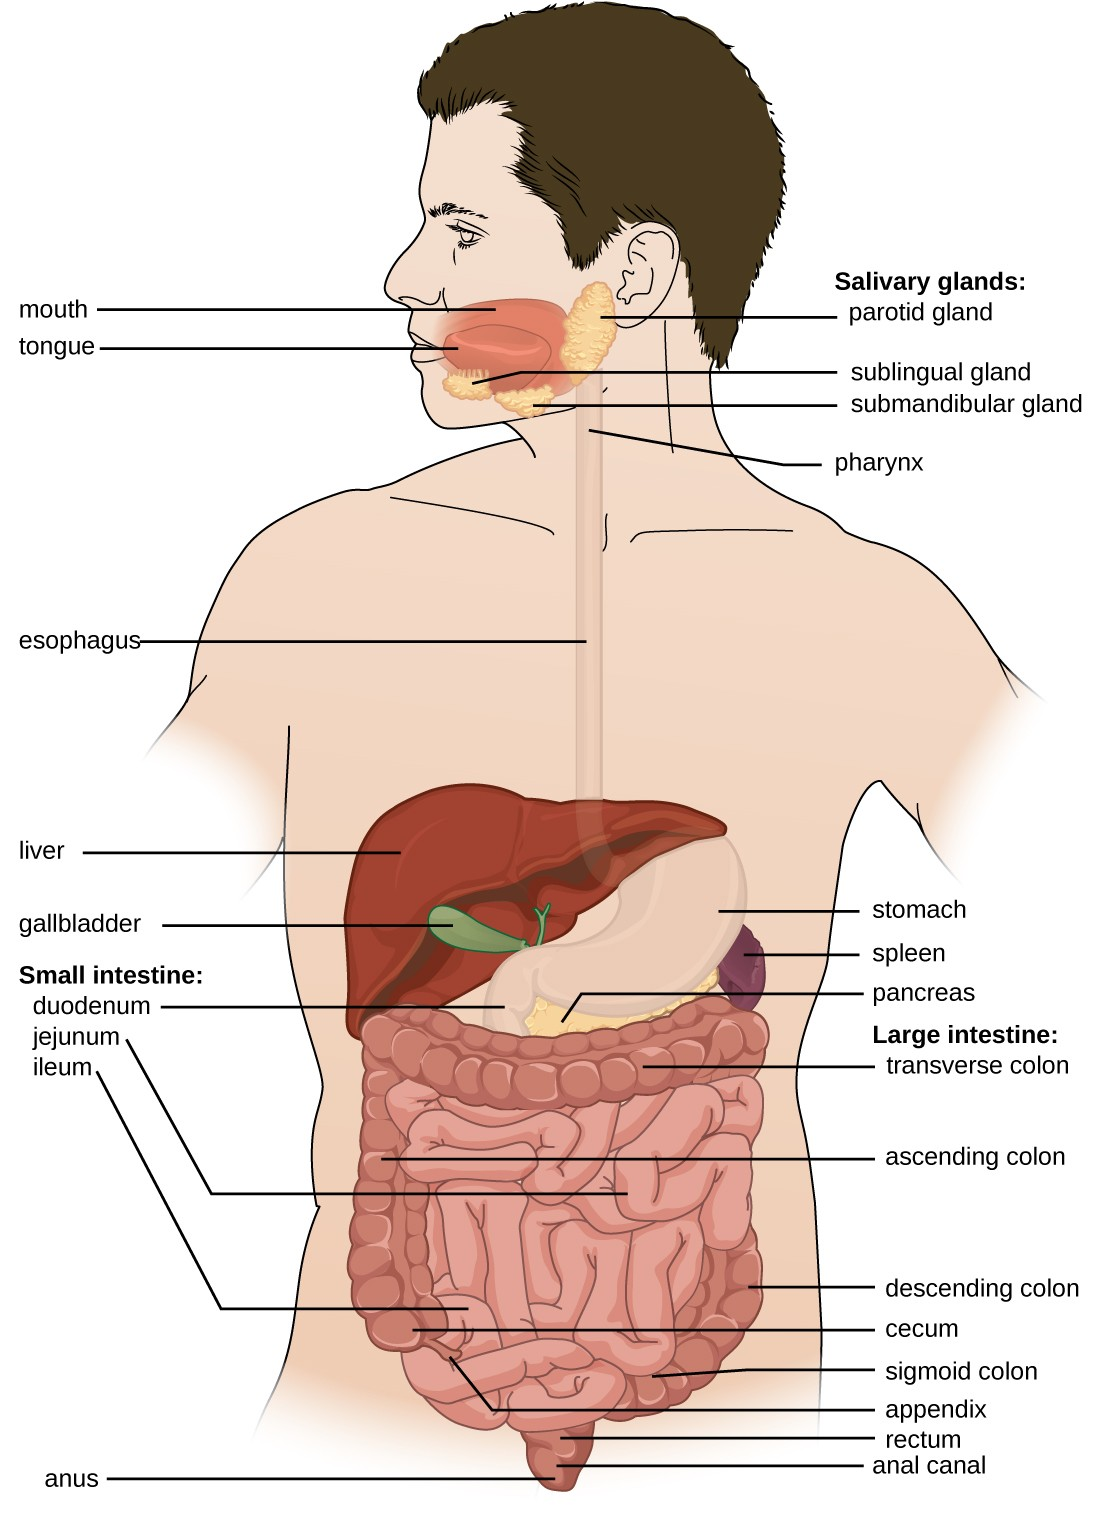 Anatomy and Normal Microbiota of the Digestive System | Microbiology